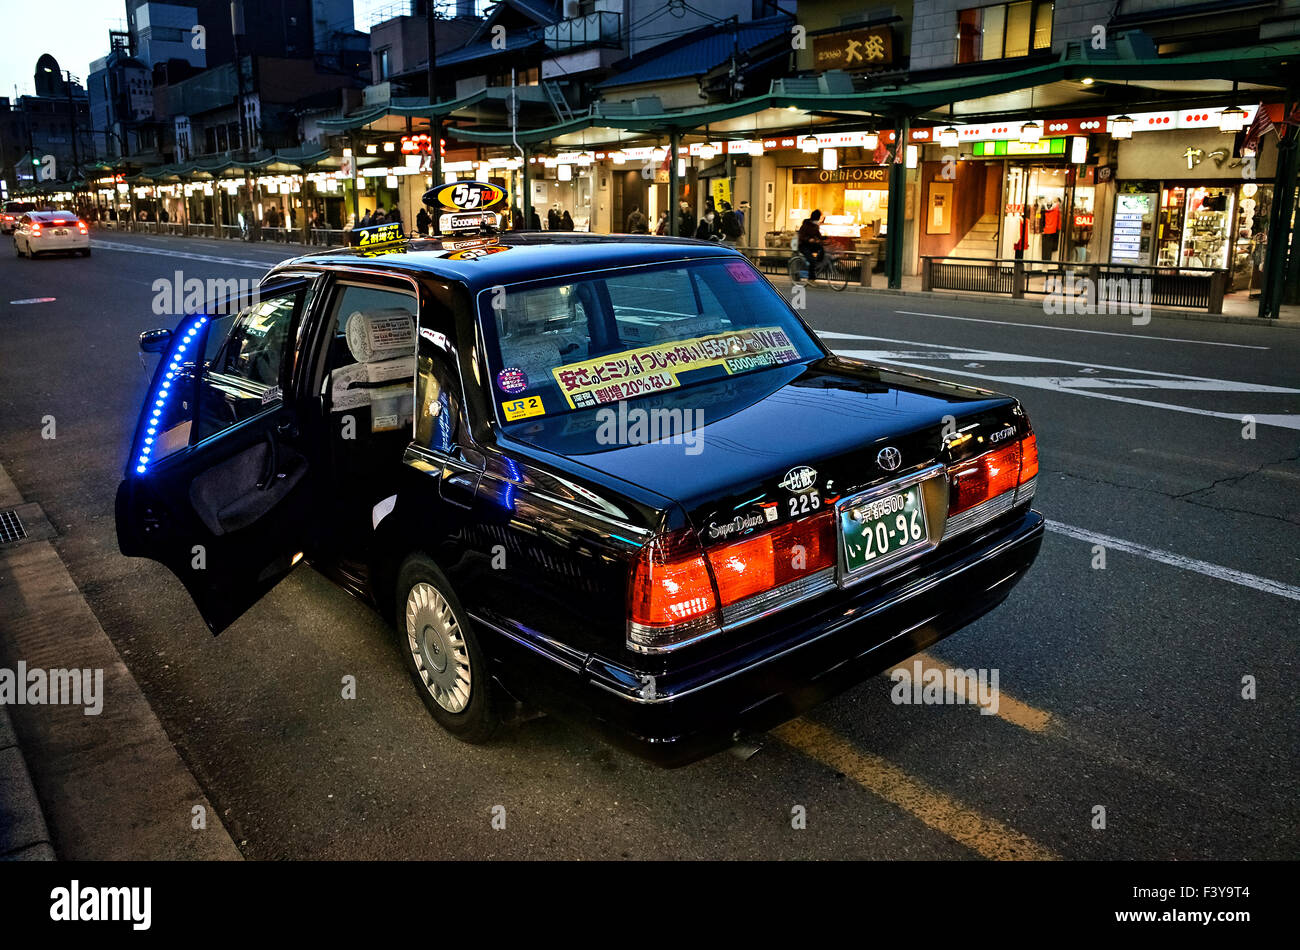 Le Japon, l'île de Honshu, Kansai, Kyoto, taxi en attente dans le district de Gion. Photo Stock